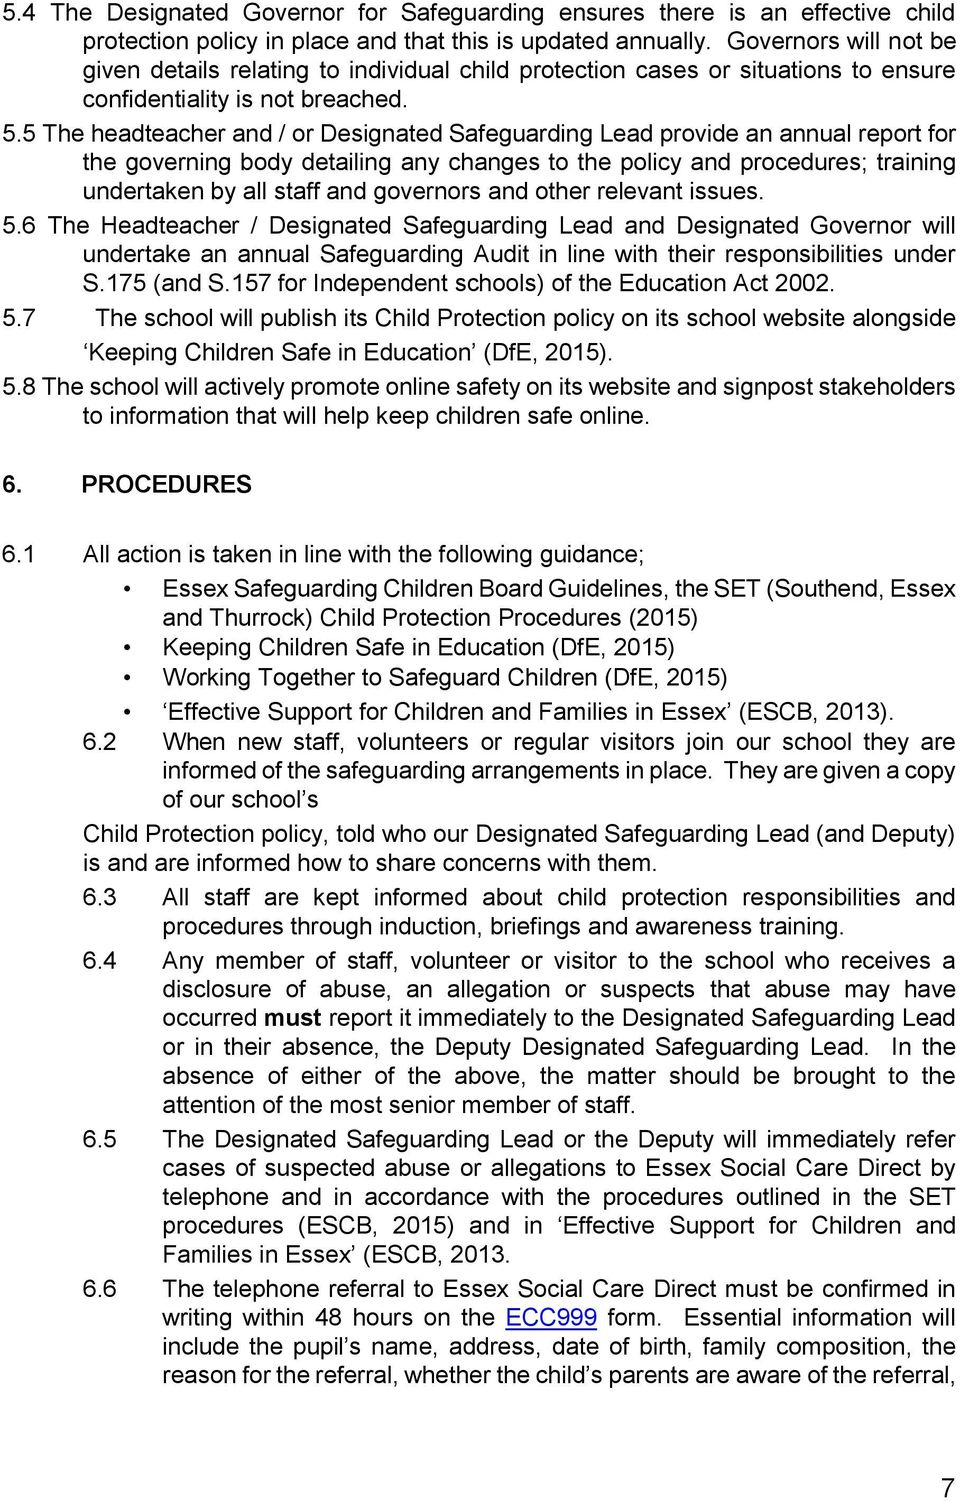 5 The headteacher and / or Designated Safeguarding Lead provide an annual report for the governing body detailing any changes to the policy and procedures; training undertaken by all staff and